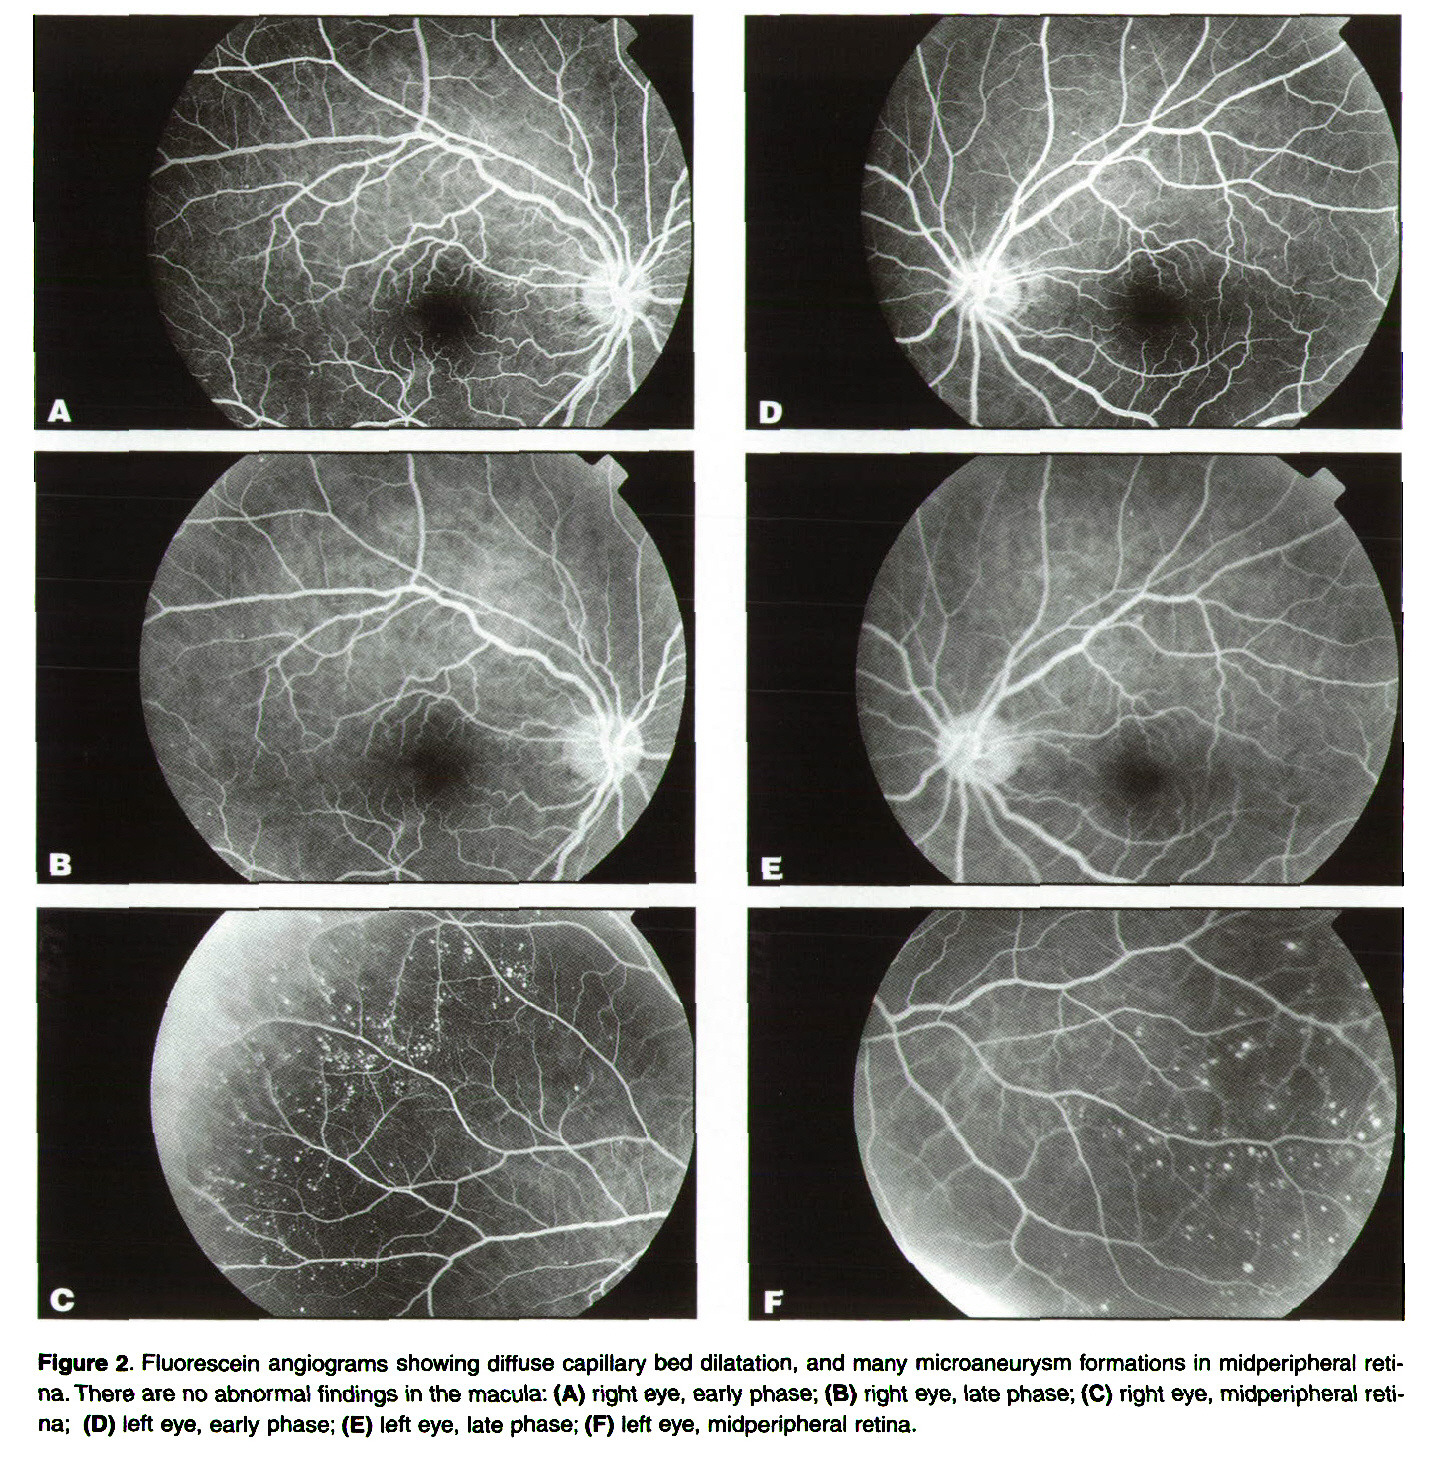 Figure 2. Fluorescein angiograms showing diffuse capillary bed dilatation, and many microaneurysm formations in midperipheral retina. There are no abnormal findings in the macula: (A) right eye, early phase; (B) right eye, late phase; (C) right eye, midperipheral retina; (D) left eye, early phase; (E) left eye, late phase; (F) left eye, midperipheral retina.